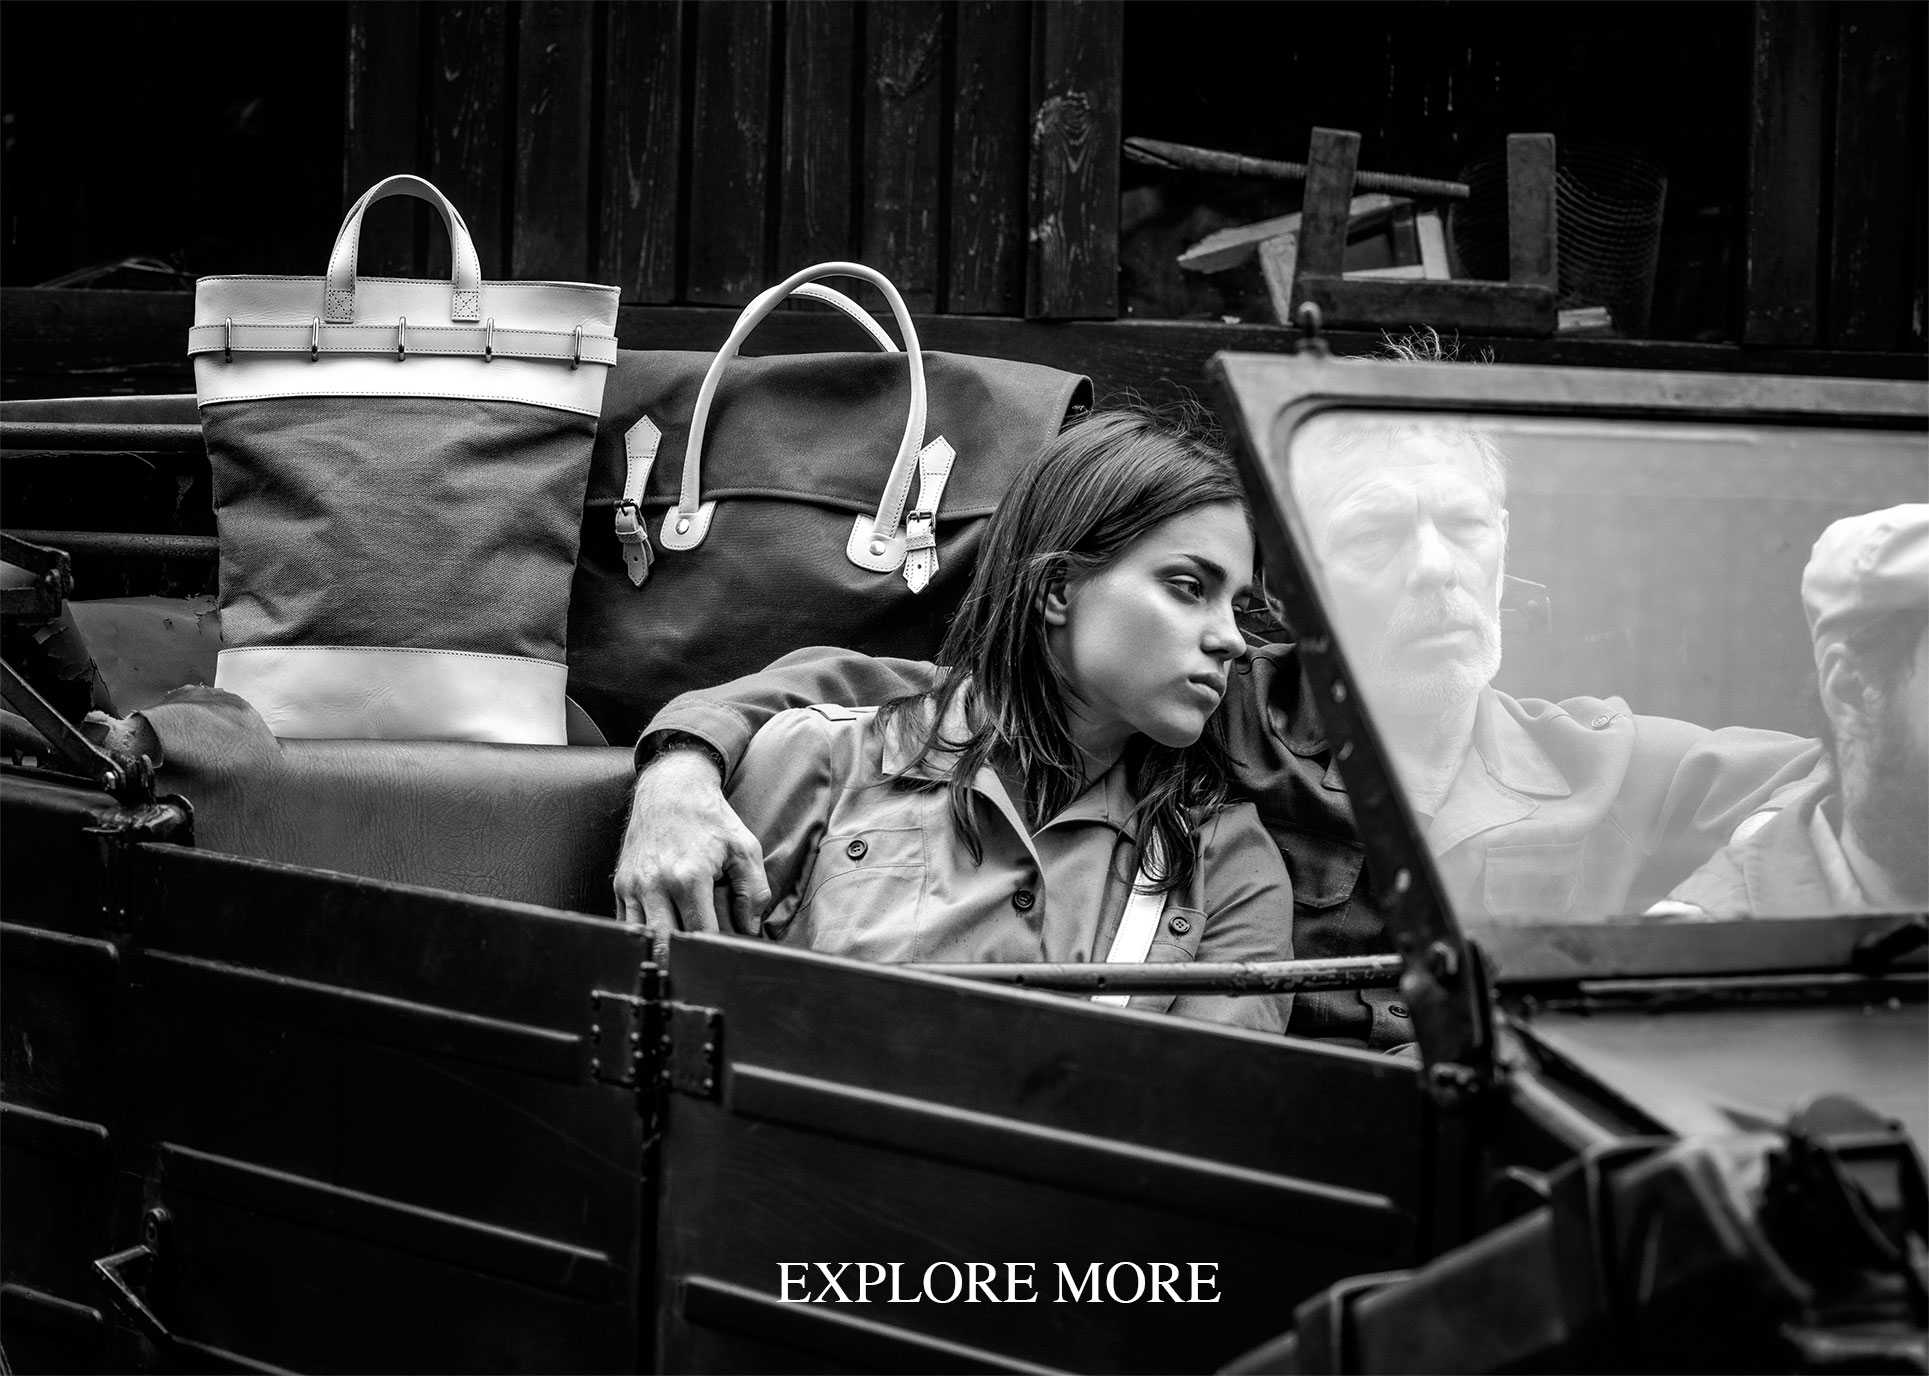 Mahiout shooting with vintage cars of luxury and functional bags and backpacks in leather and cotton canvas sustainable fashion